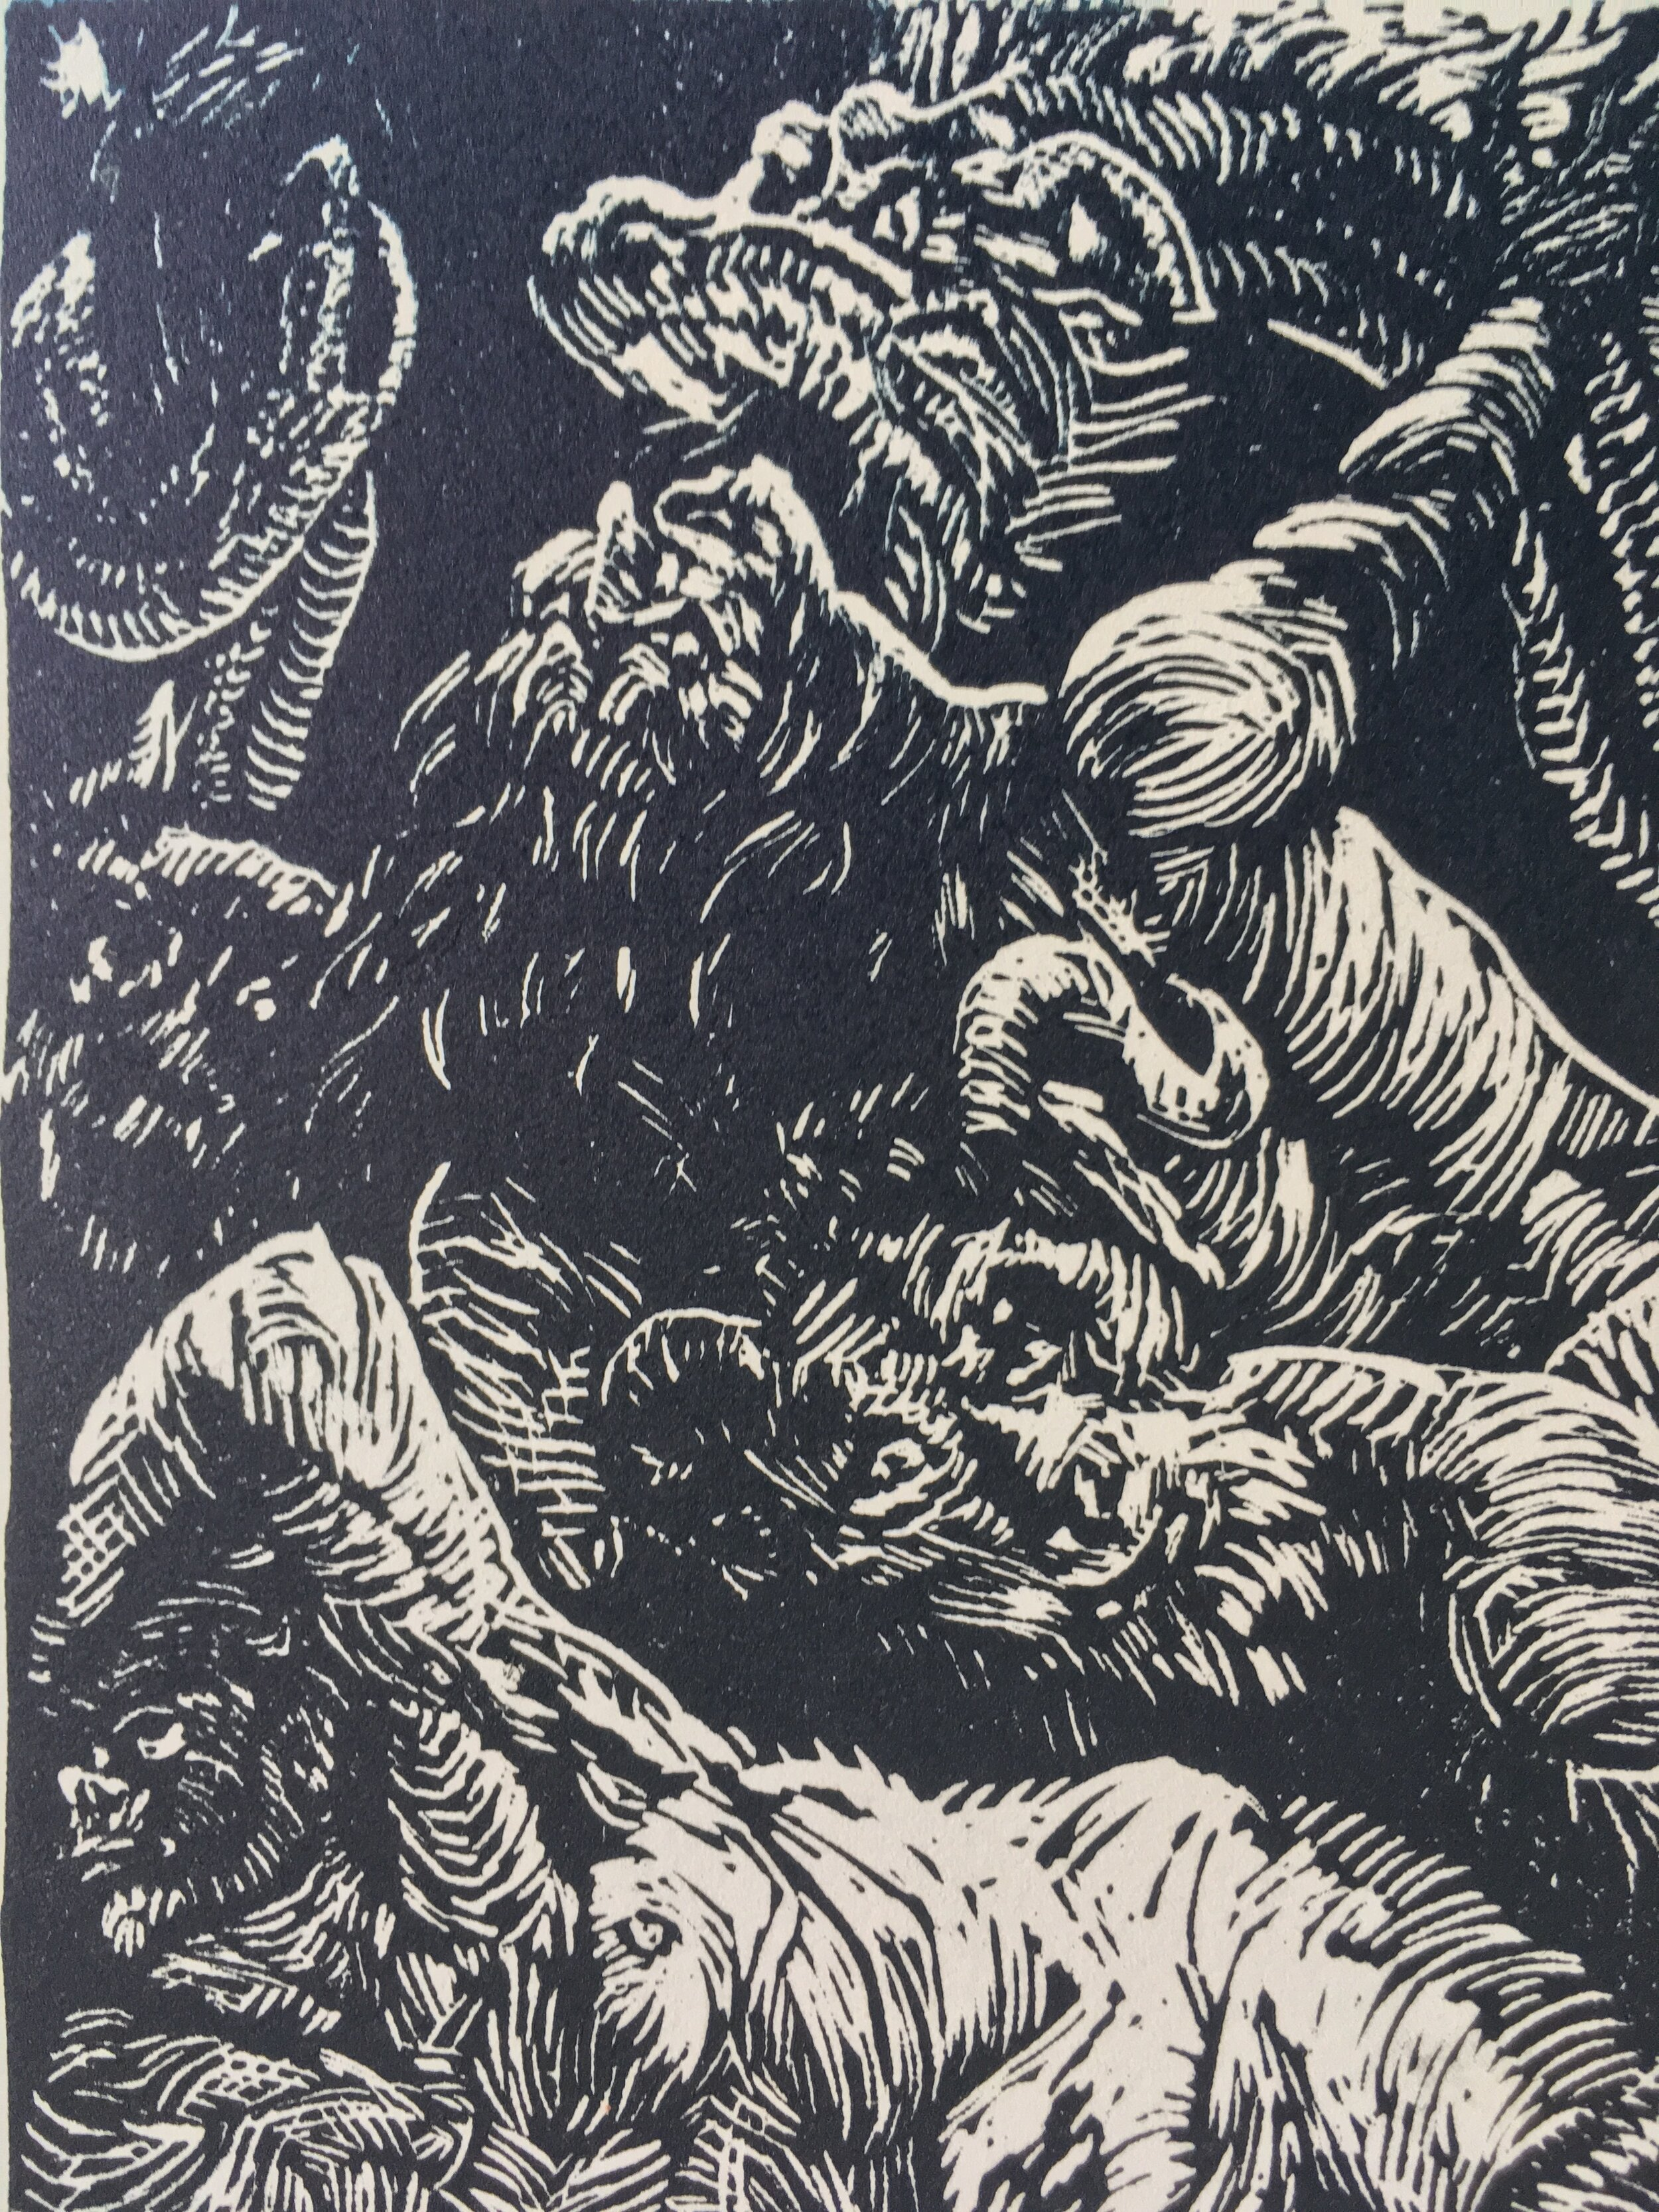 """""""Study of Cesari's Rebel Angels""""  5 x 7"""" rainbow roll linocut on recycled paper, edition of 13, March 2018."""